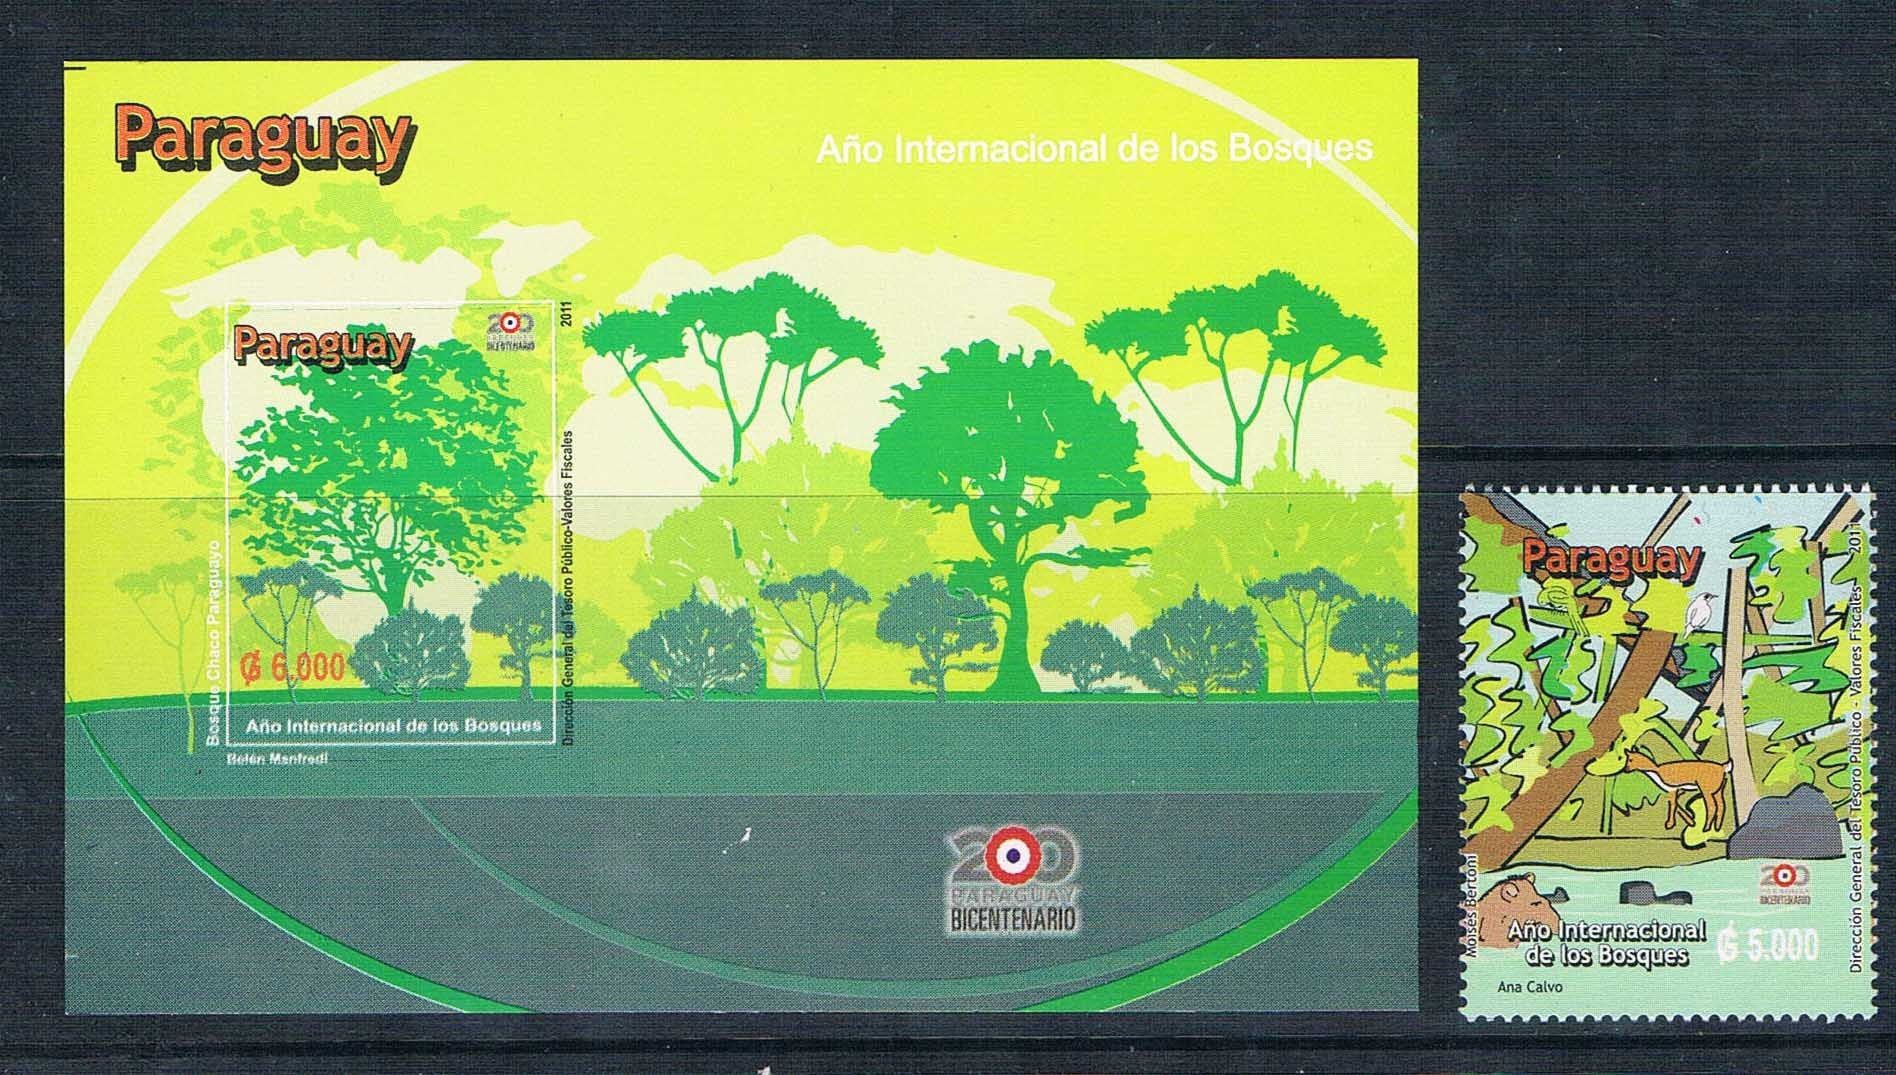 2011 the international year of forests stamps K0995 Paraguay 1 + M new 1024 h0008 1979 international conference of hungarian numismatic coins engraved version 5 0119 new stamps